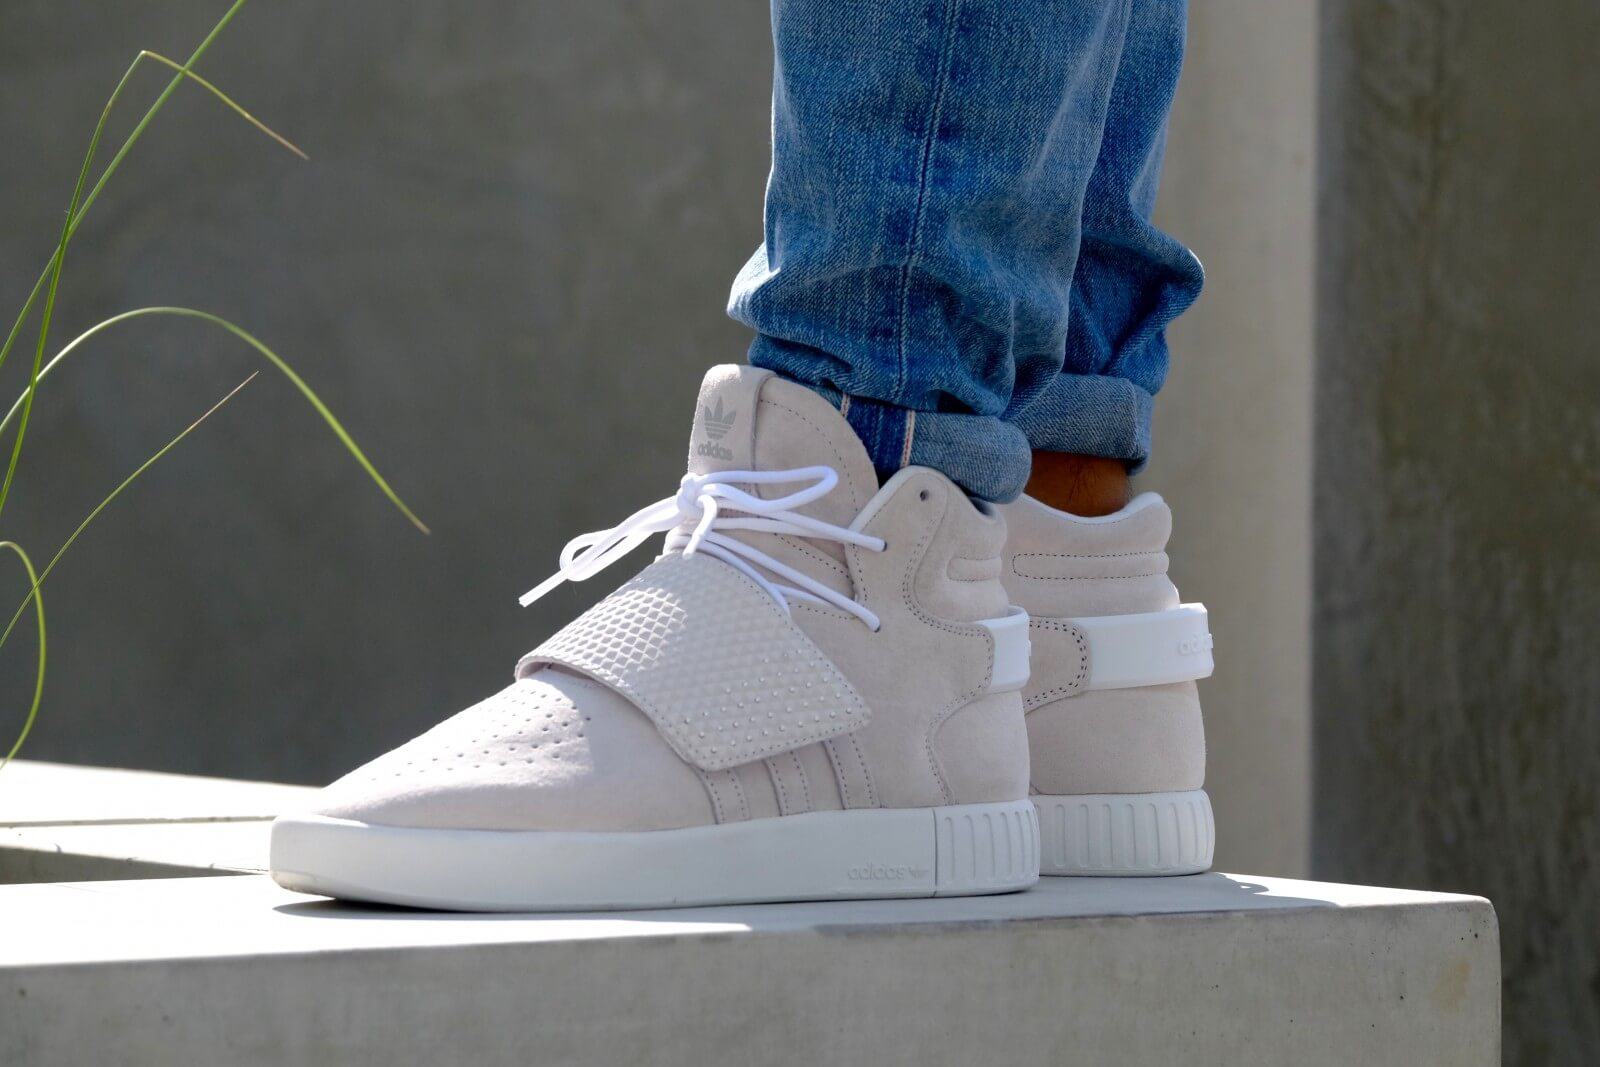 Adidas Tubular Invader White